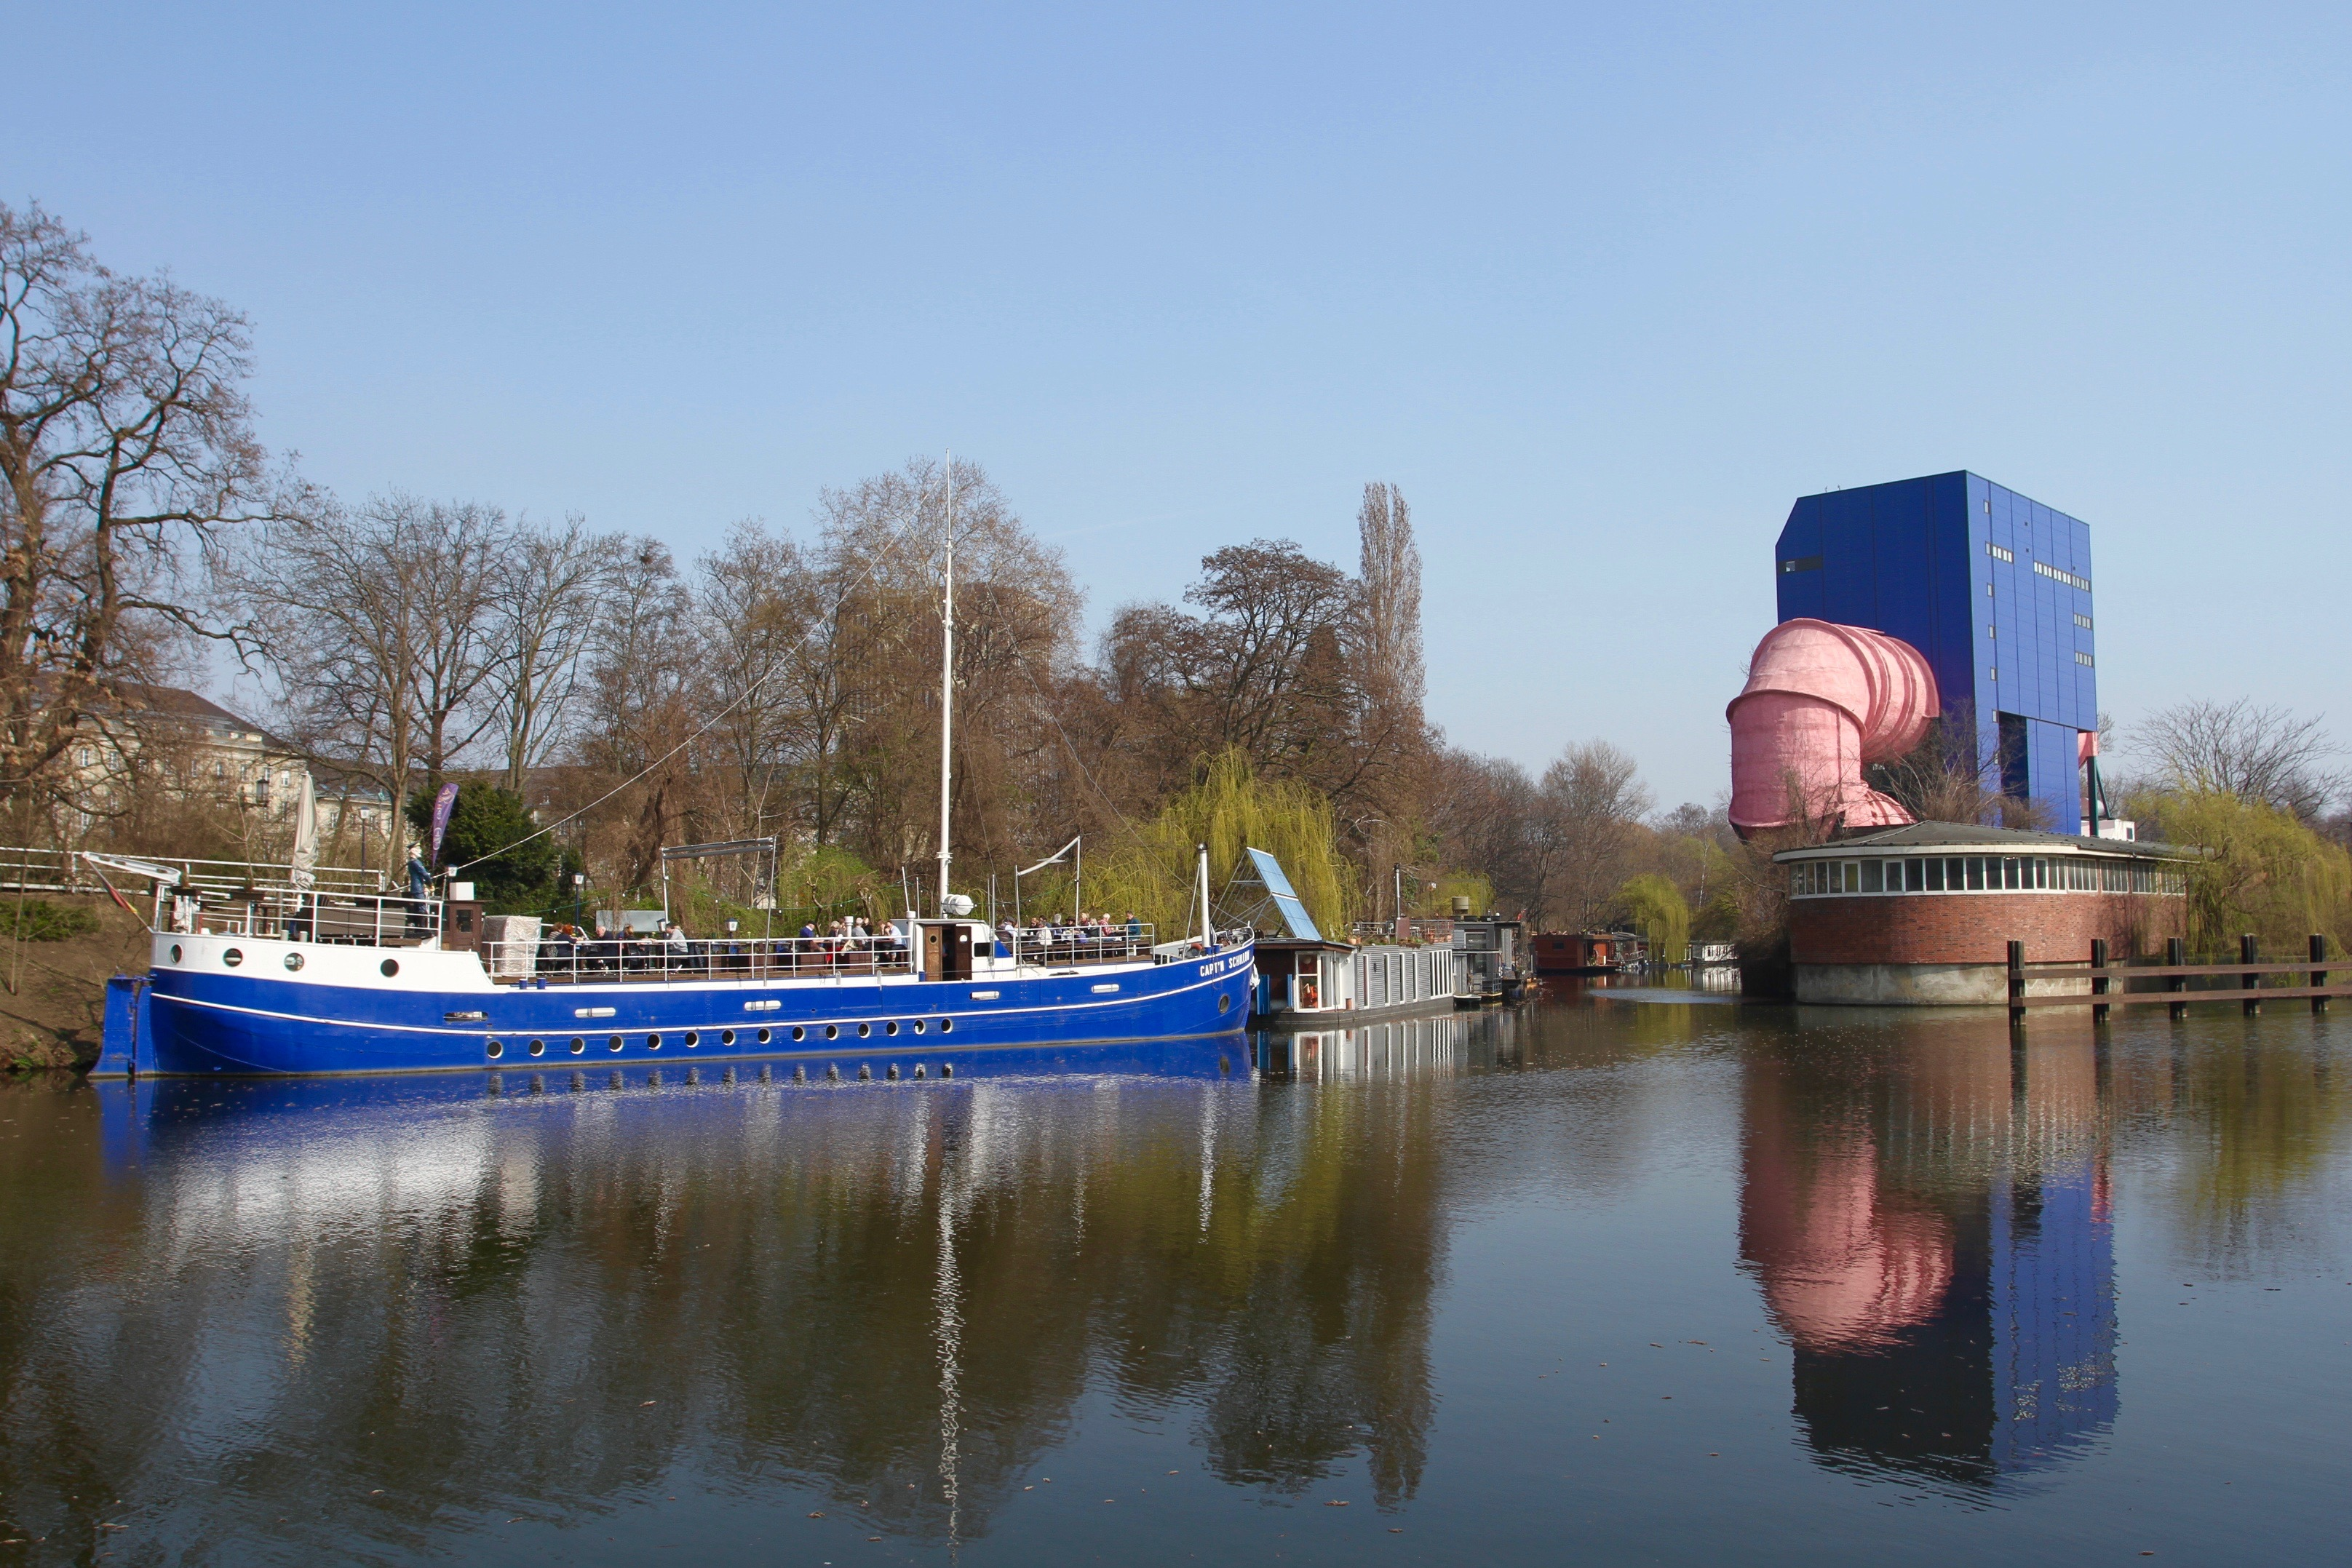 Landwehr Canal and weird water circulation pipe, Berlin, Germany